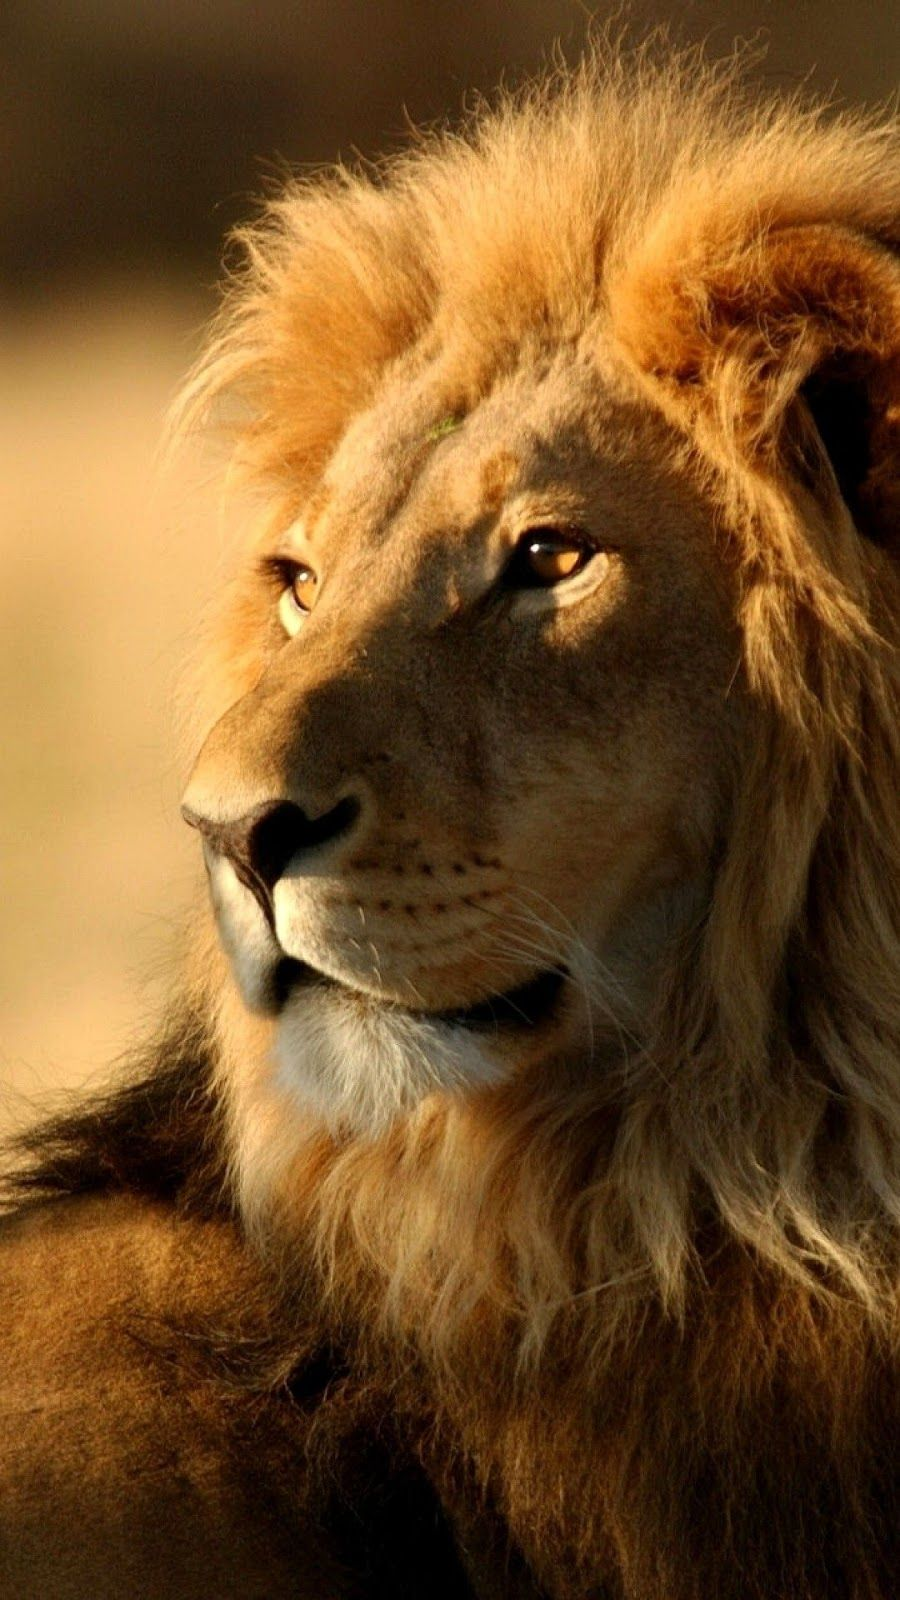 1080p Hd Lion Wallpaper Iphone High Quality Desktop Iphone